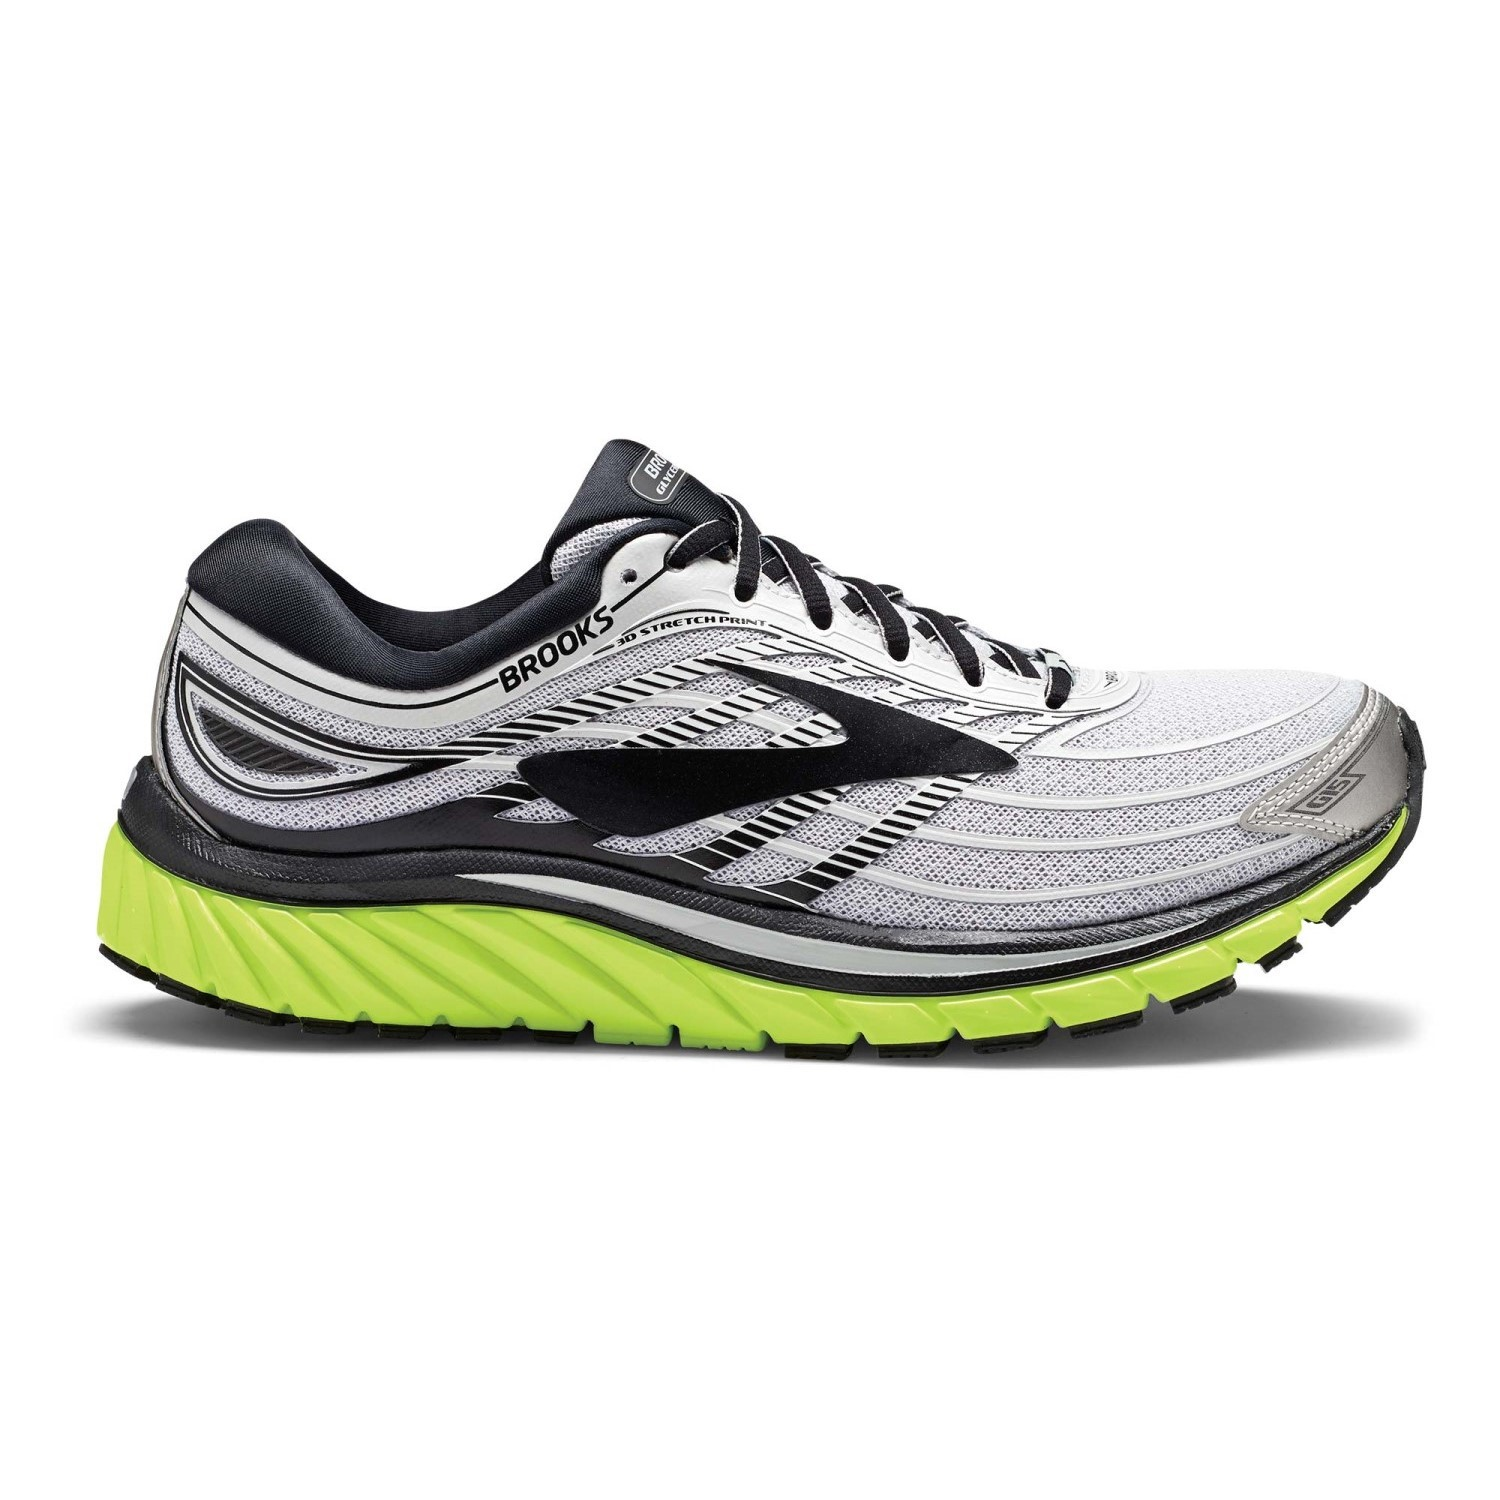 83f7fd12d0704 Brooks Glycerin 15 - Mens Running Shoes - Silver Black Nightlife ...